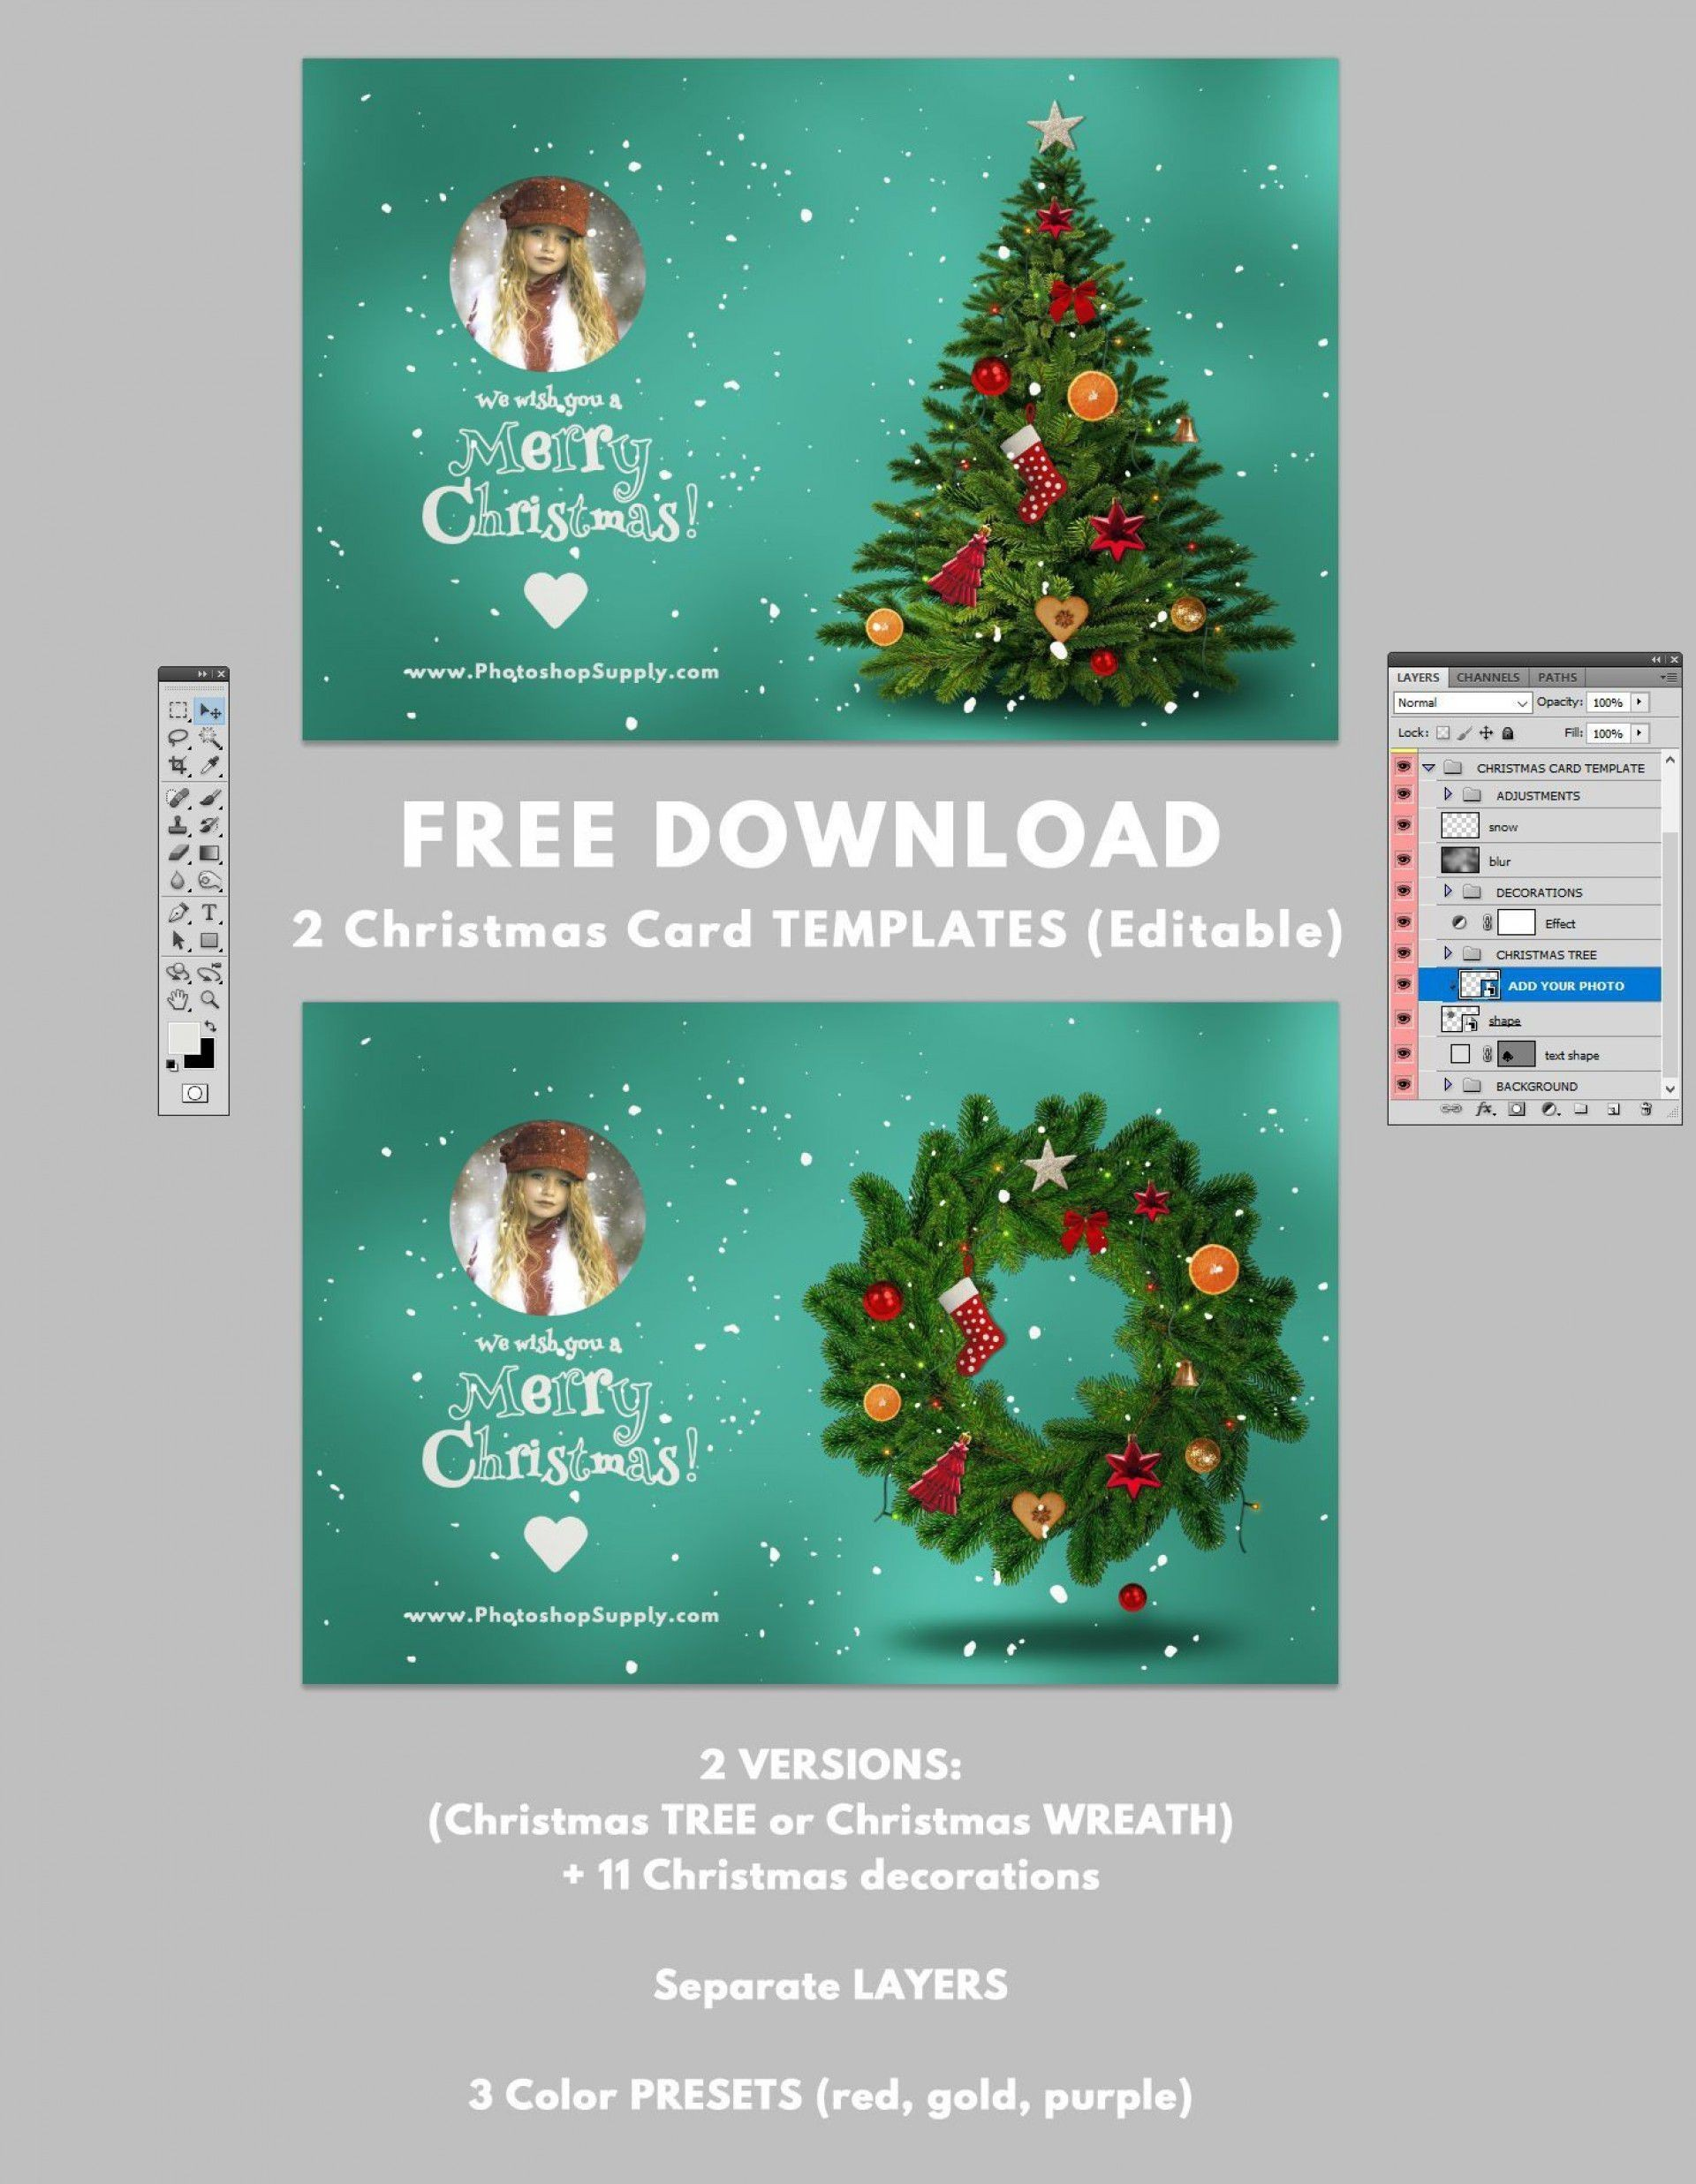 000 Frightening Christma Card Template Free Download High Definition  Downloads Photoshop Photo Editable1920